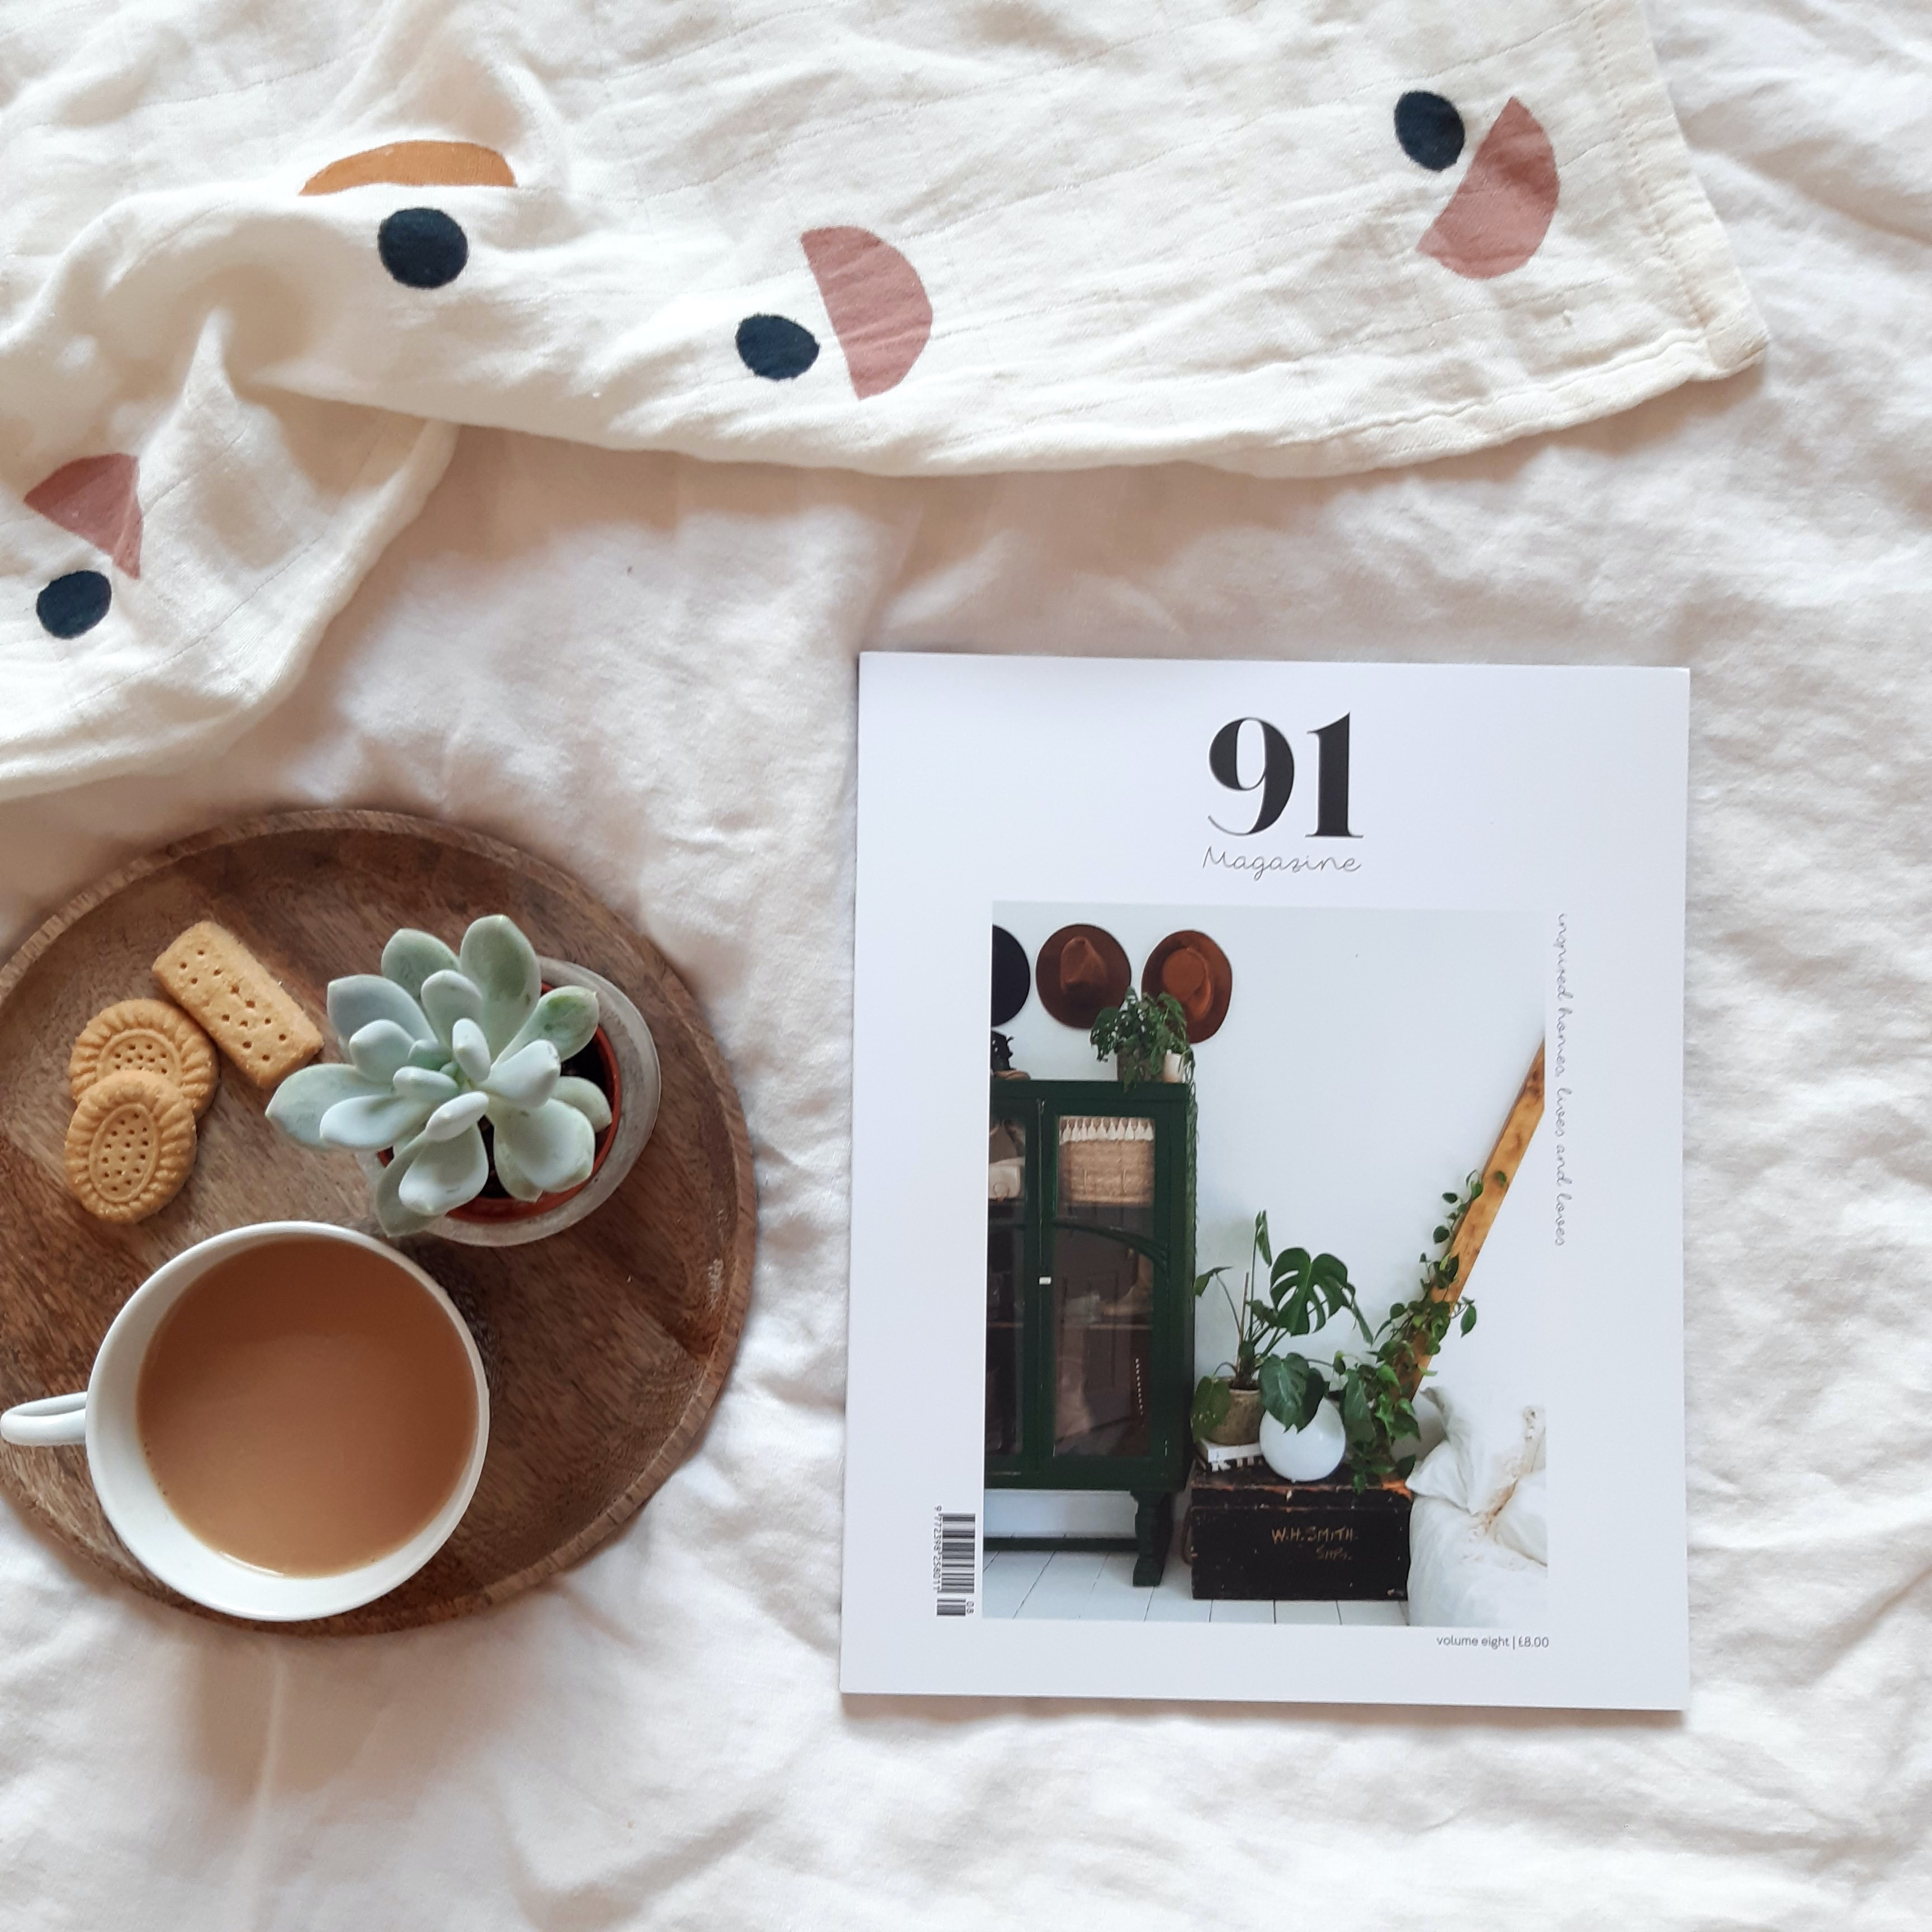 On top on white sheets is a 91 magazine. Next to the magazine is a circle wooden plate that has a faux plant, a mug of tea and three biscuits.